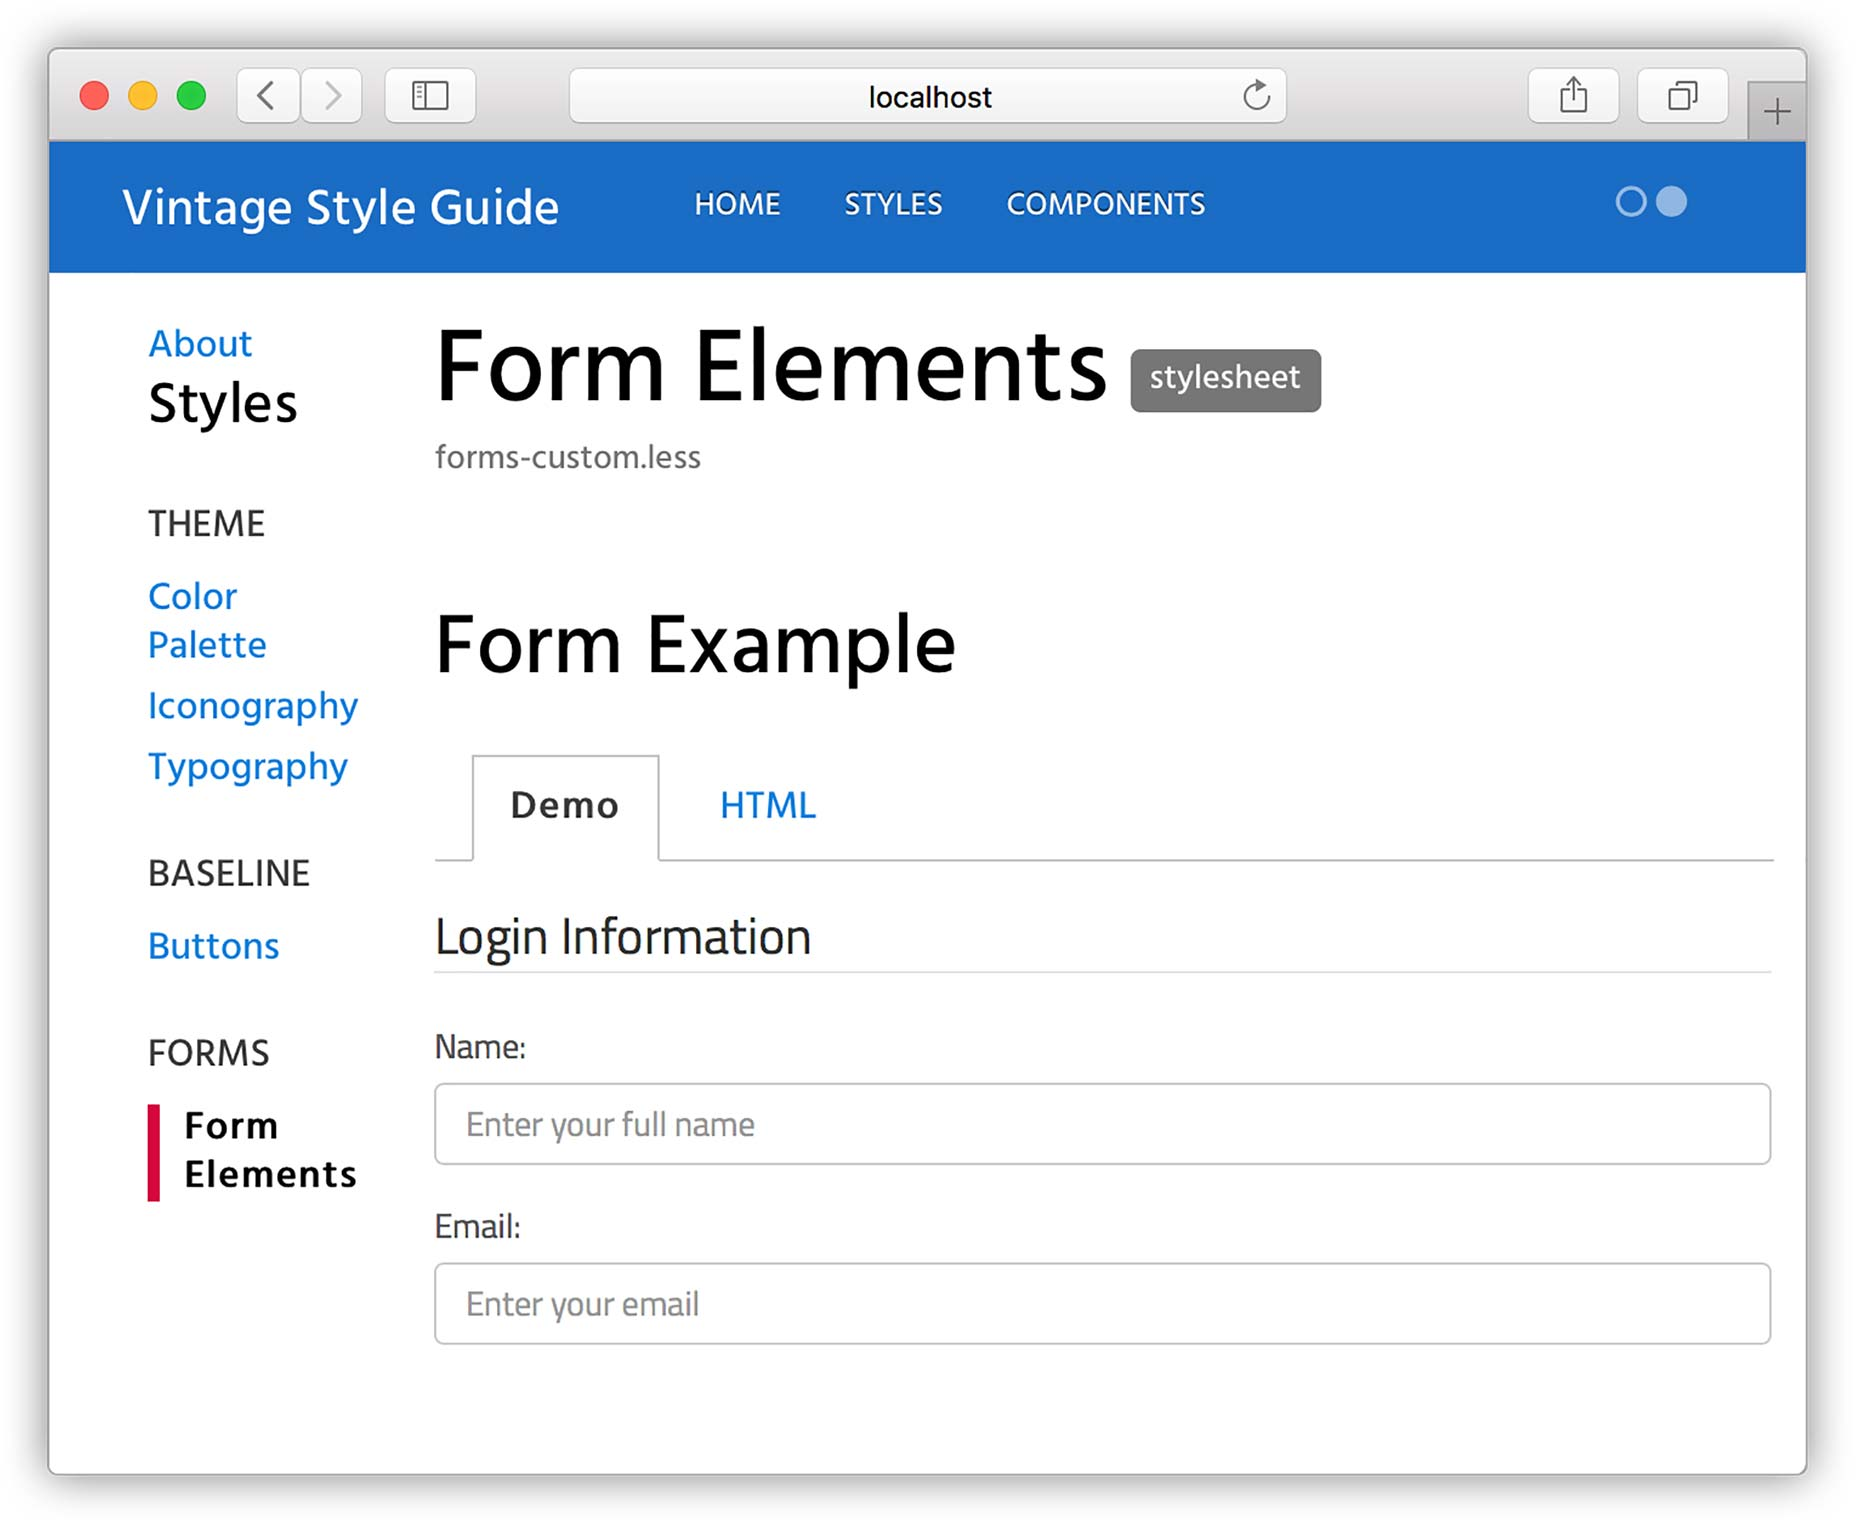 12-style-guide-forms